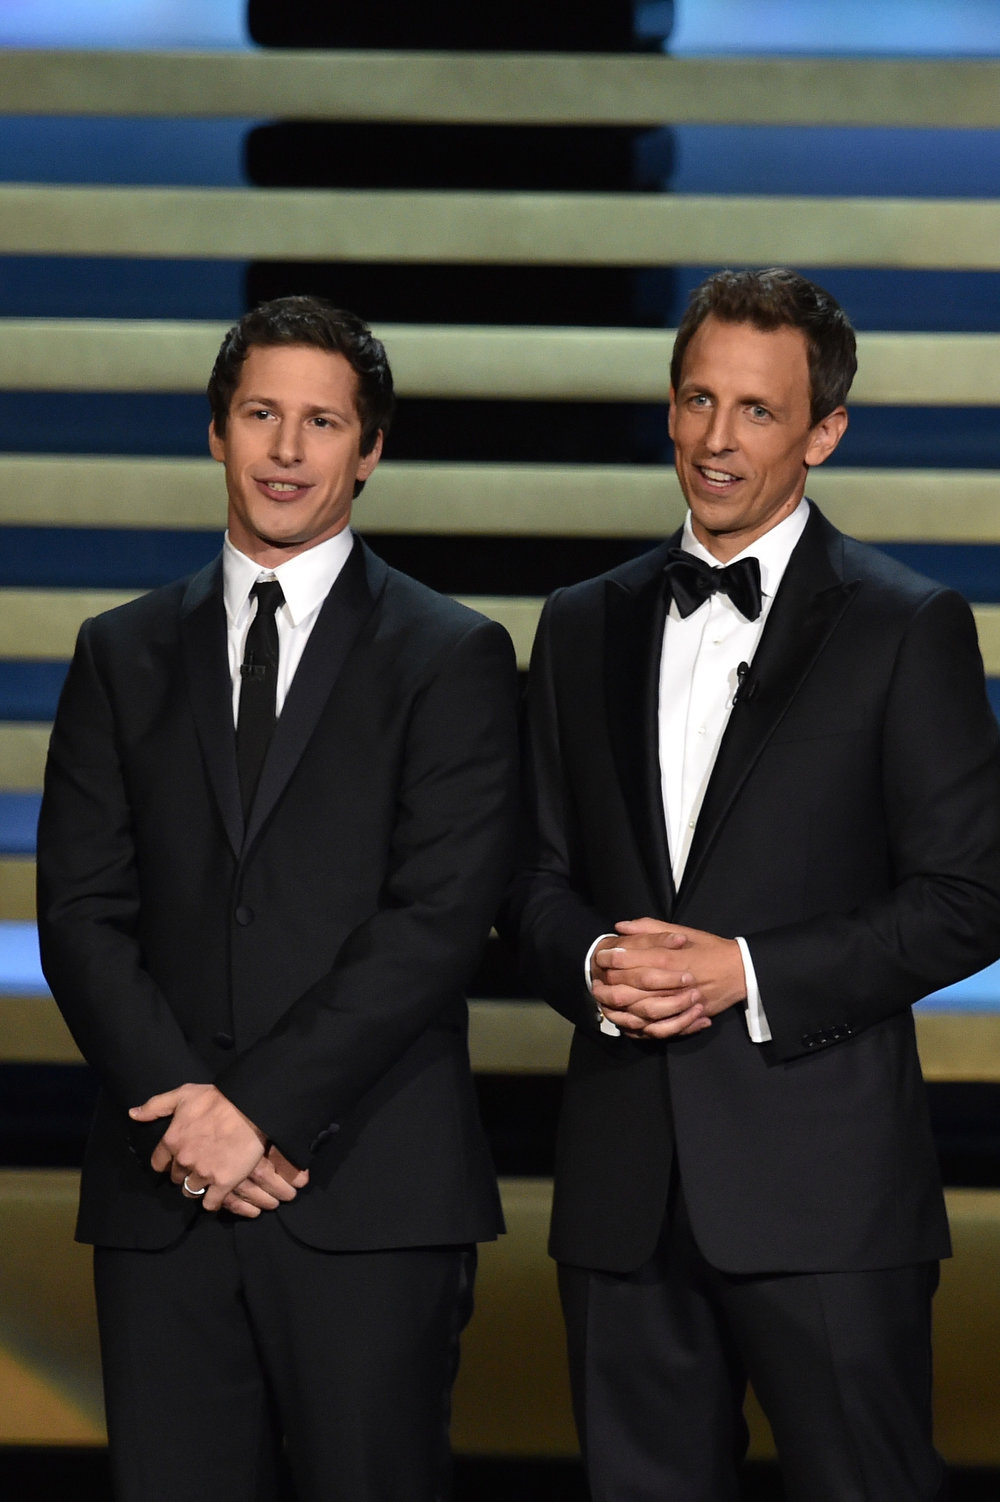 . Actor Andy Samberg (L) and host Seth Meyers speak onstage at the 66th Annual Primetime Emmy Awards held at Nokia Theatre L.A. Live on August 25, 2014 in Los Angeles, California.  (Photo by Kevin Winter/Getty Images)